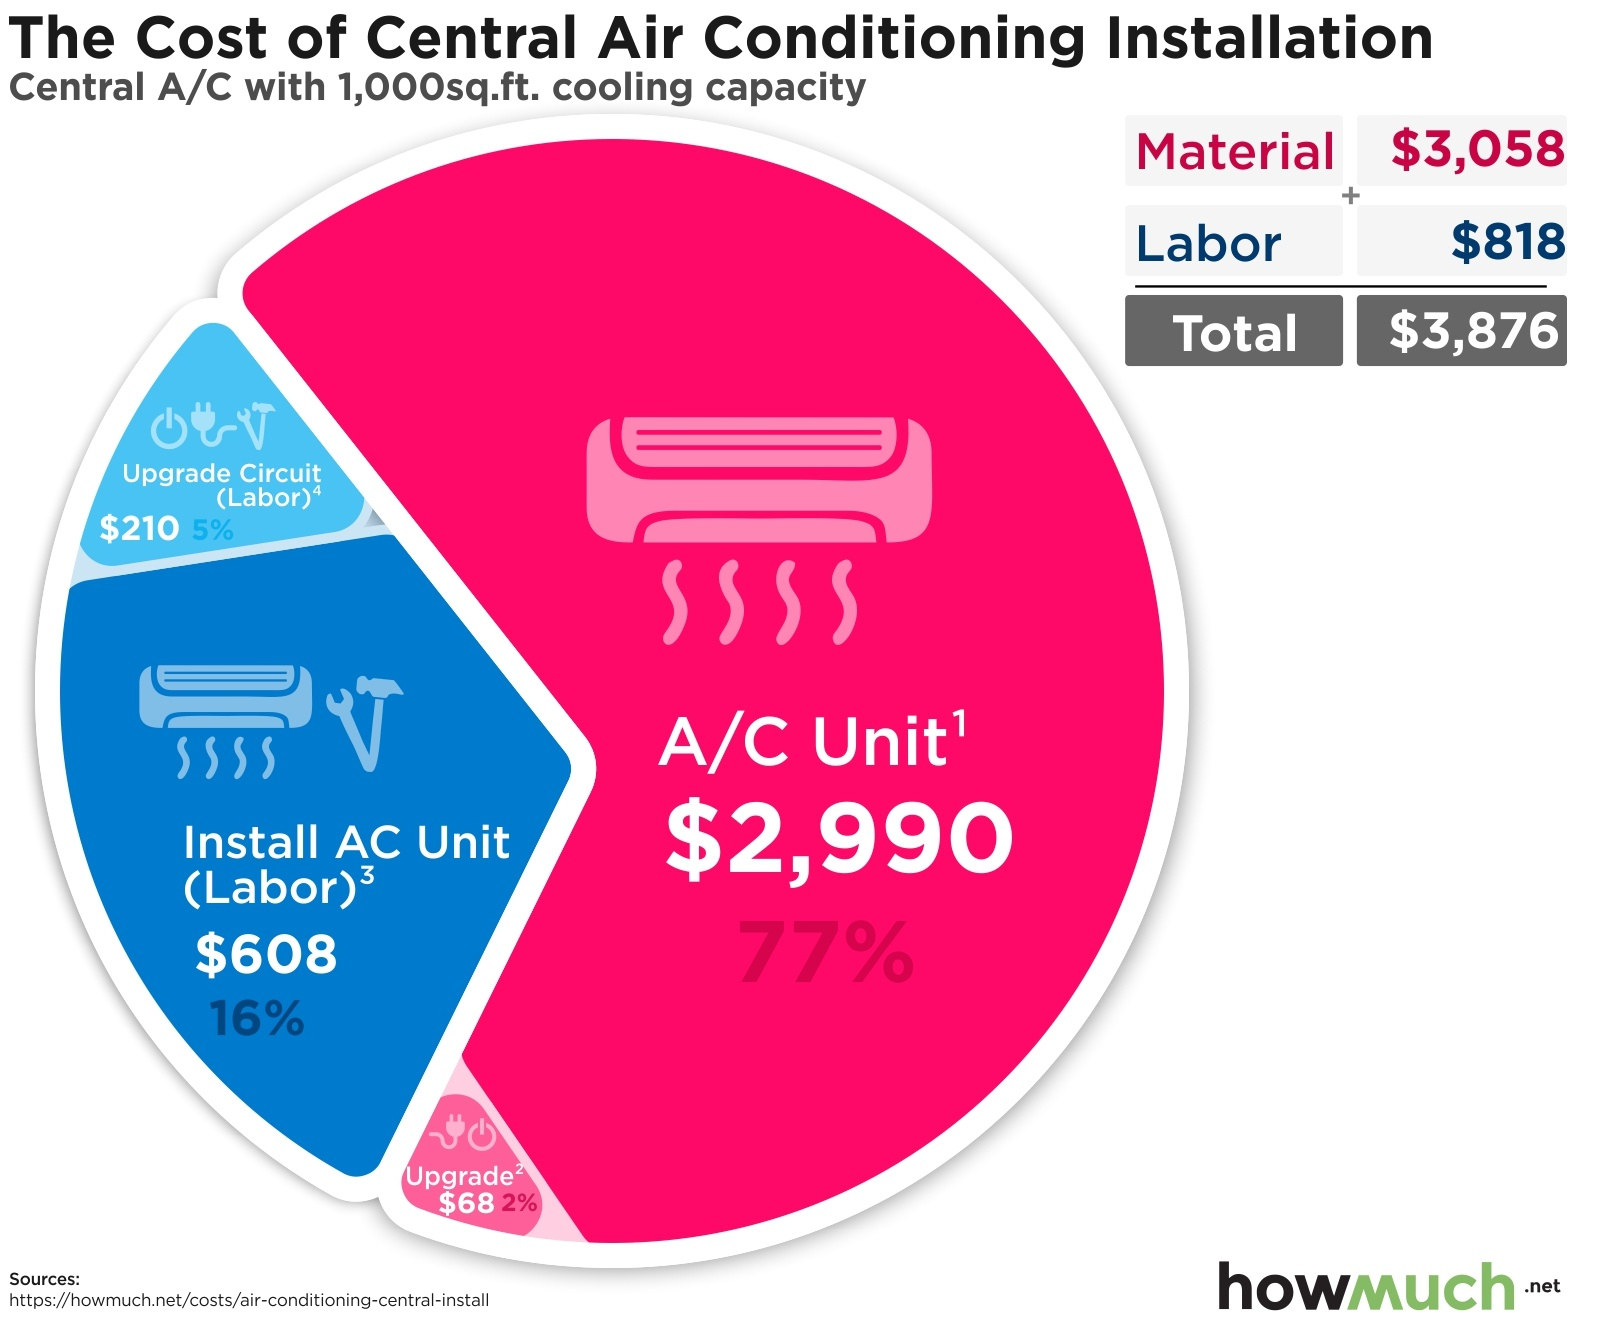 The Cost of Central Air Conditioning Installation